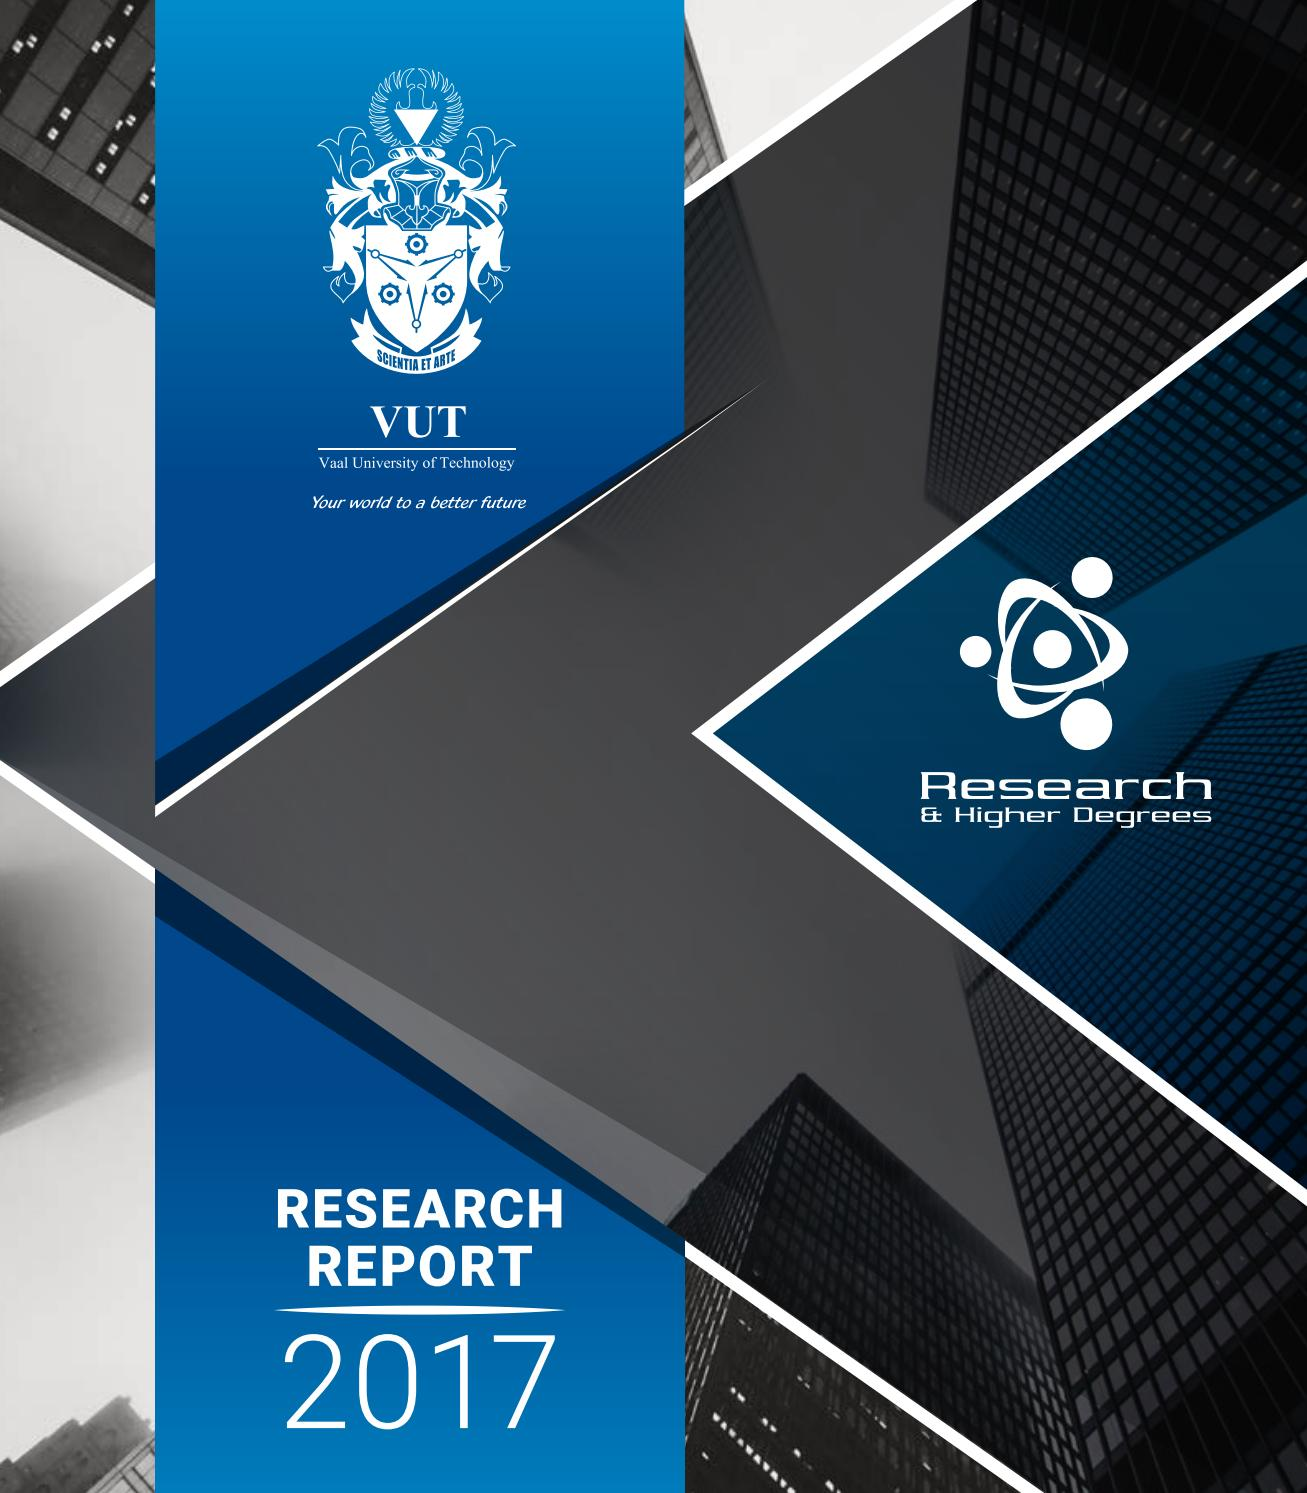 VUT Research Report 2017 by pagepanther_za - issuu